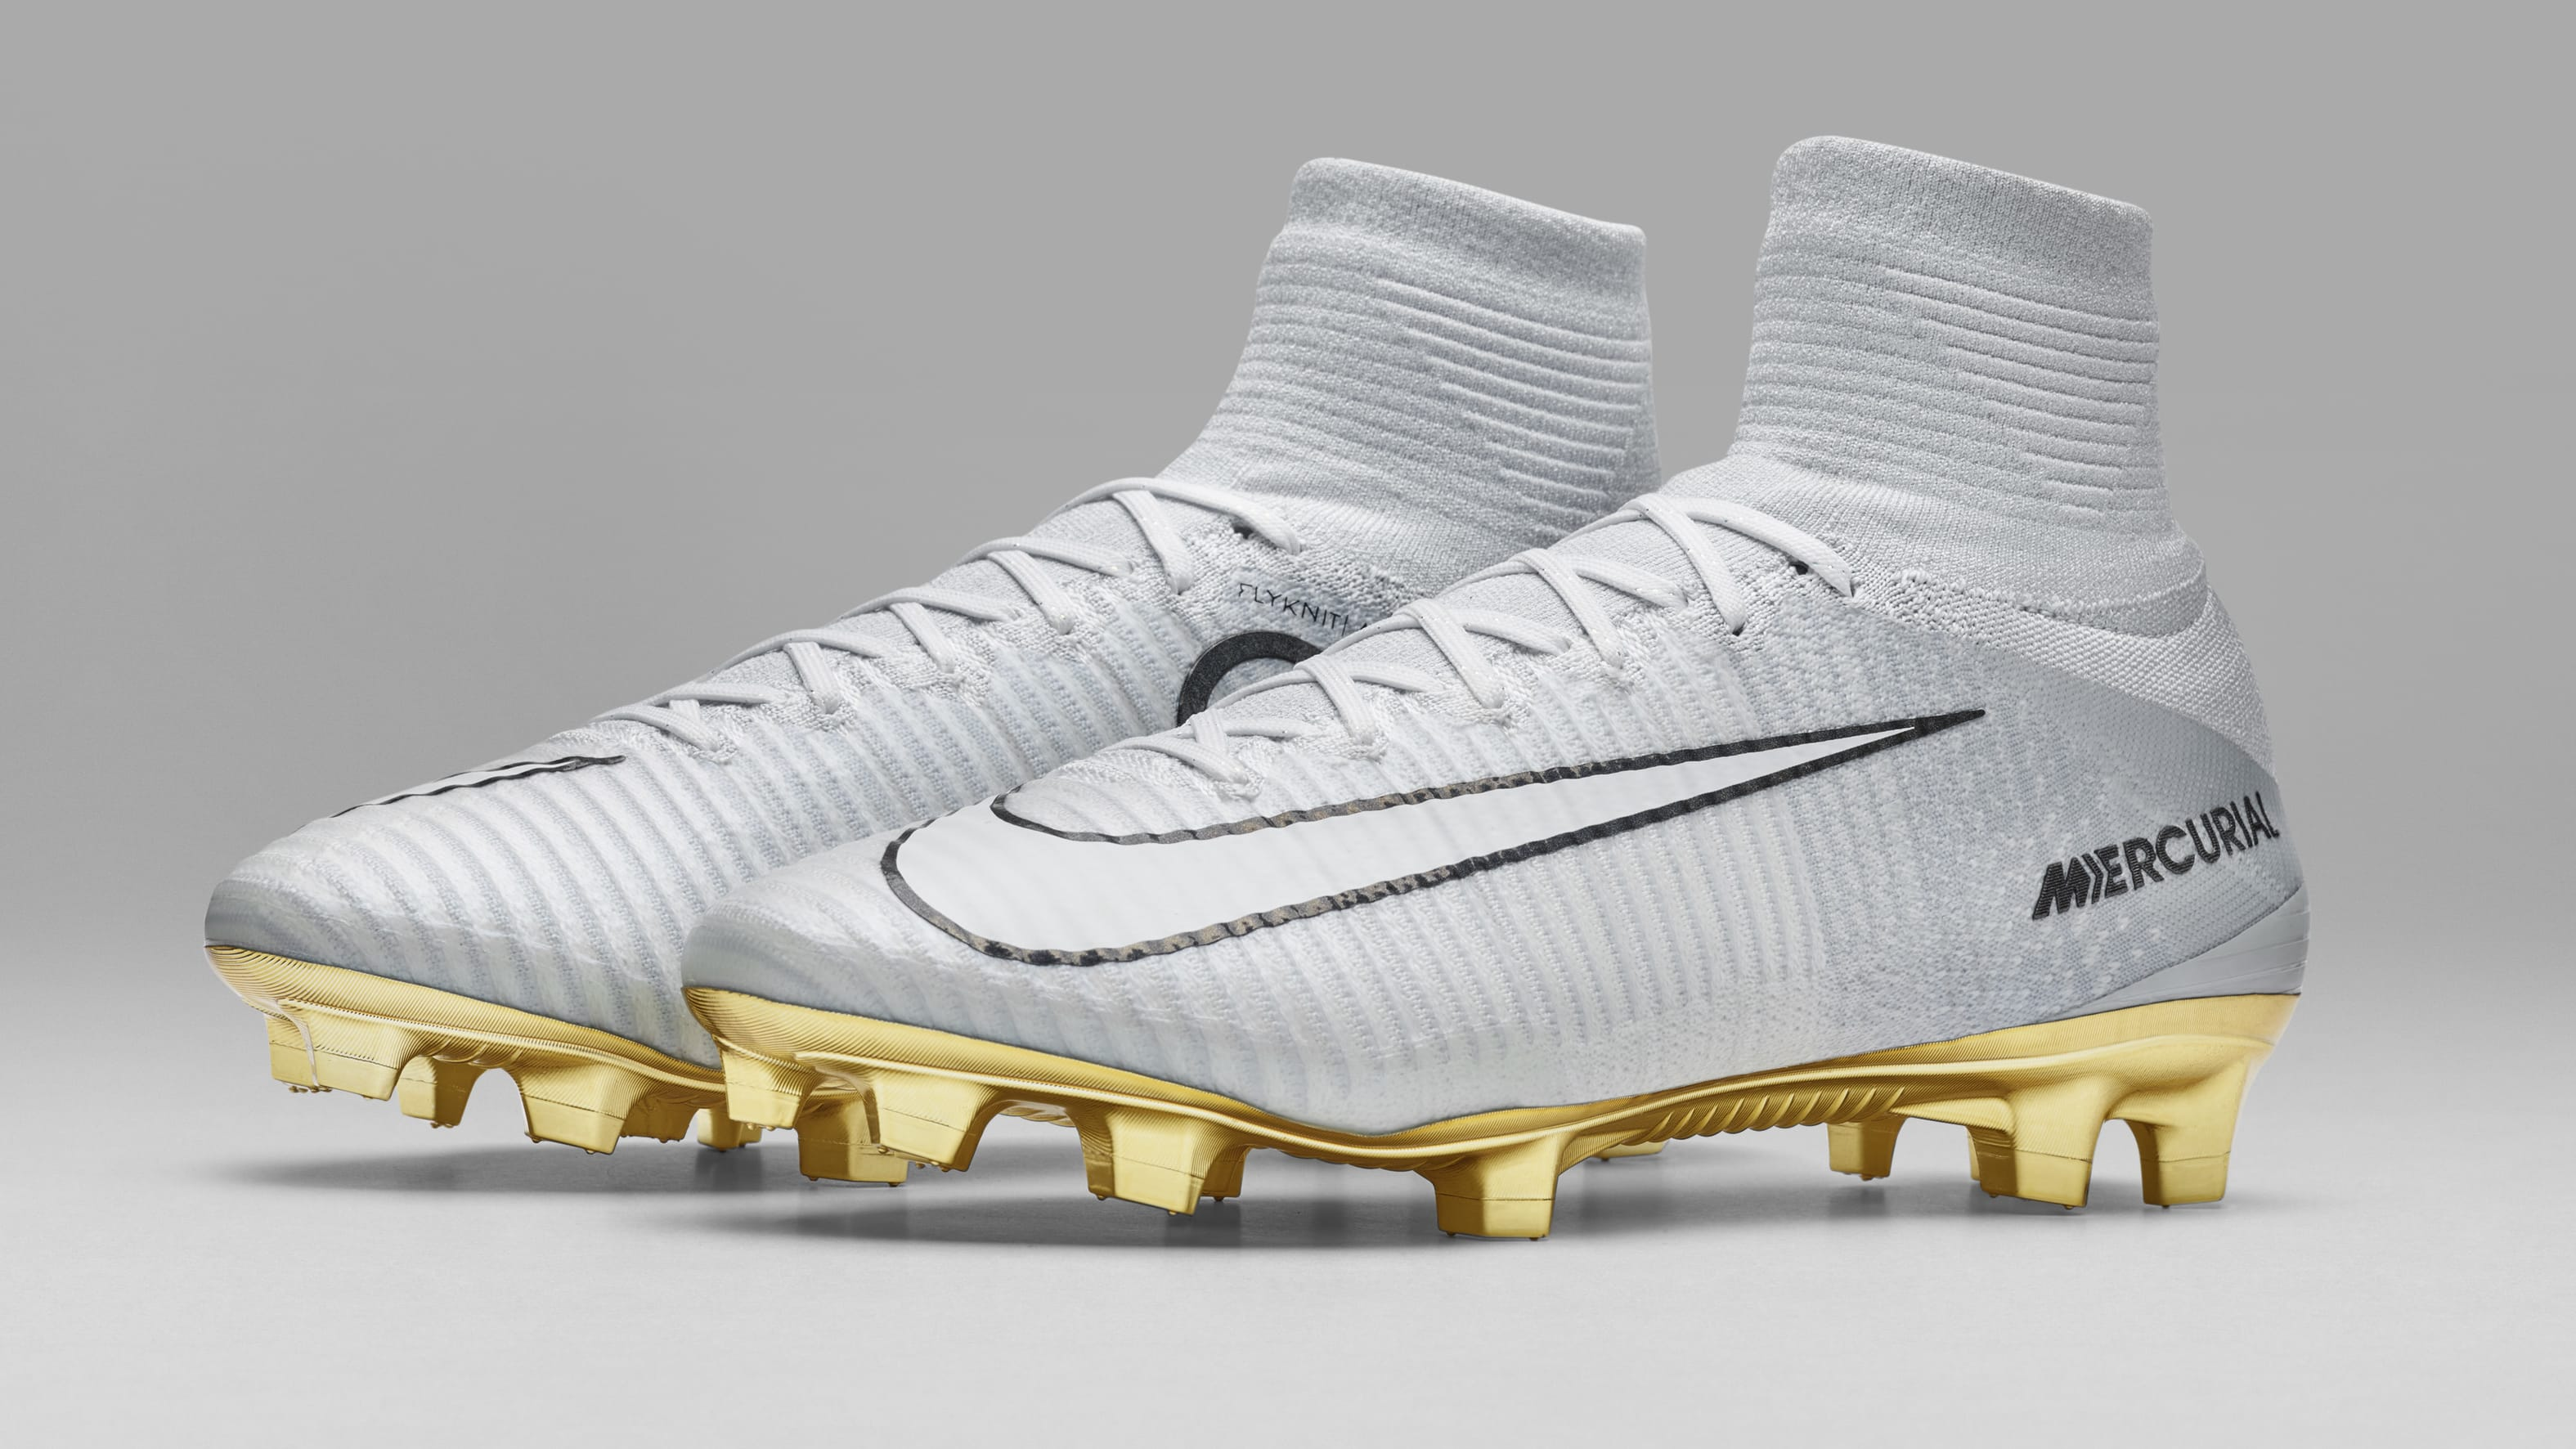 fa7a8b33c70 Cr7 White Gold Cleats - CR7 Gold Cleats